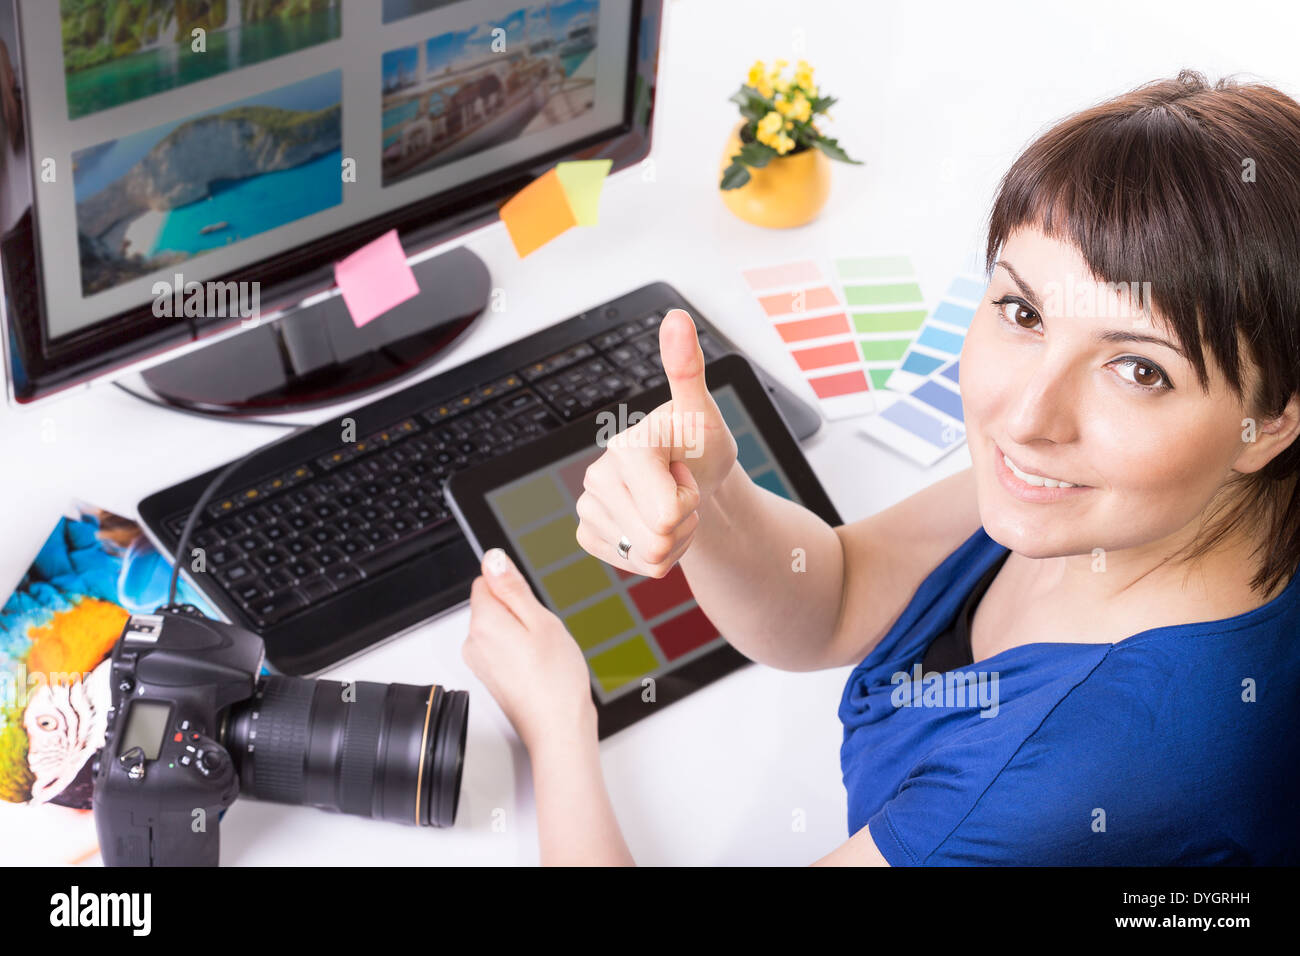 Photo editor working on computer and used graphics tablet. - Stock Image